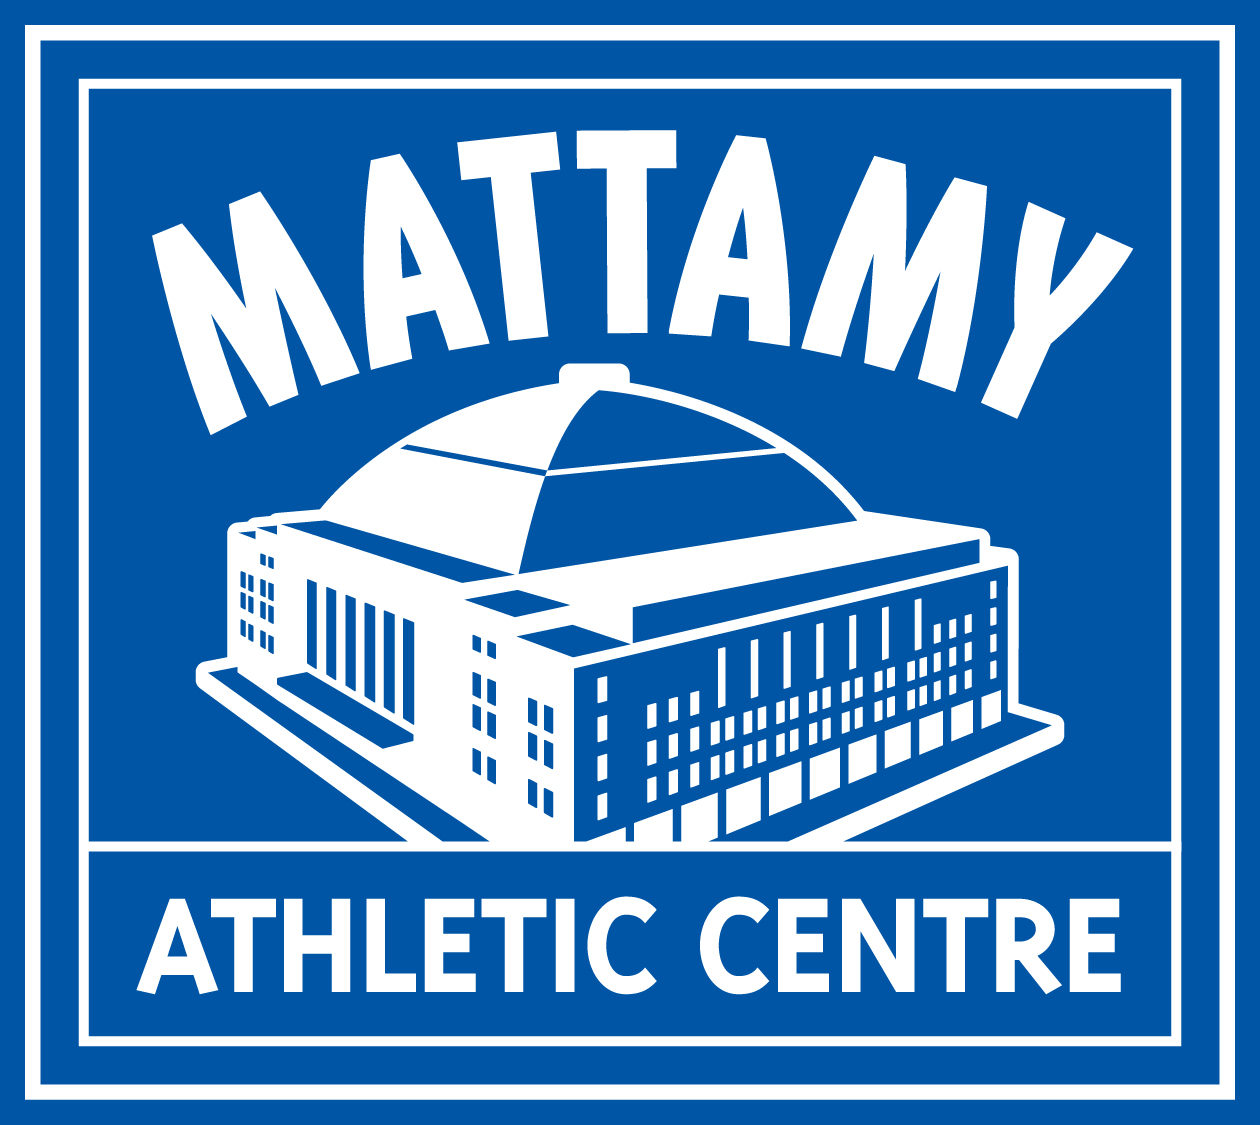 (Courtesy Mattamy Athletic Centre)